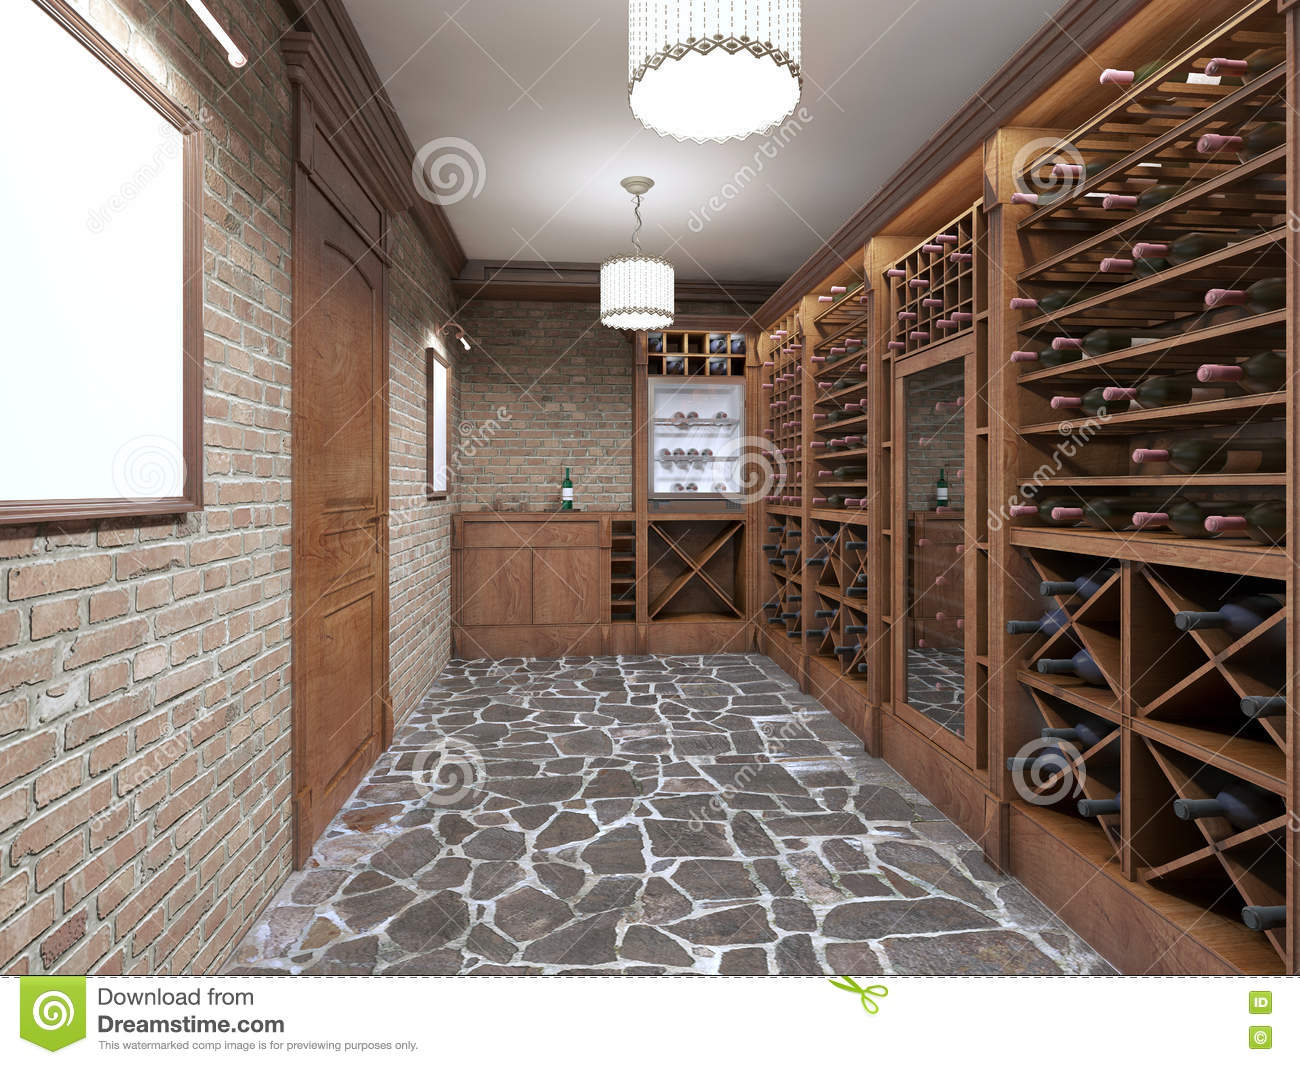 Wine Cellar In The Basement Of The House In A Rustic Style Stock Illustration Illustration Of Beverage Room 79487386